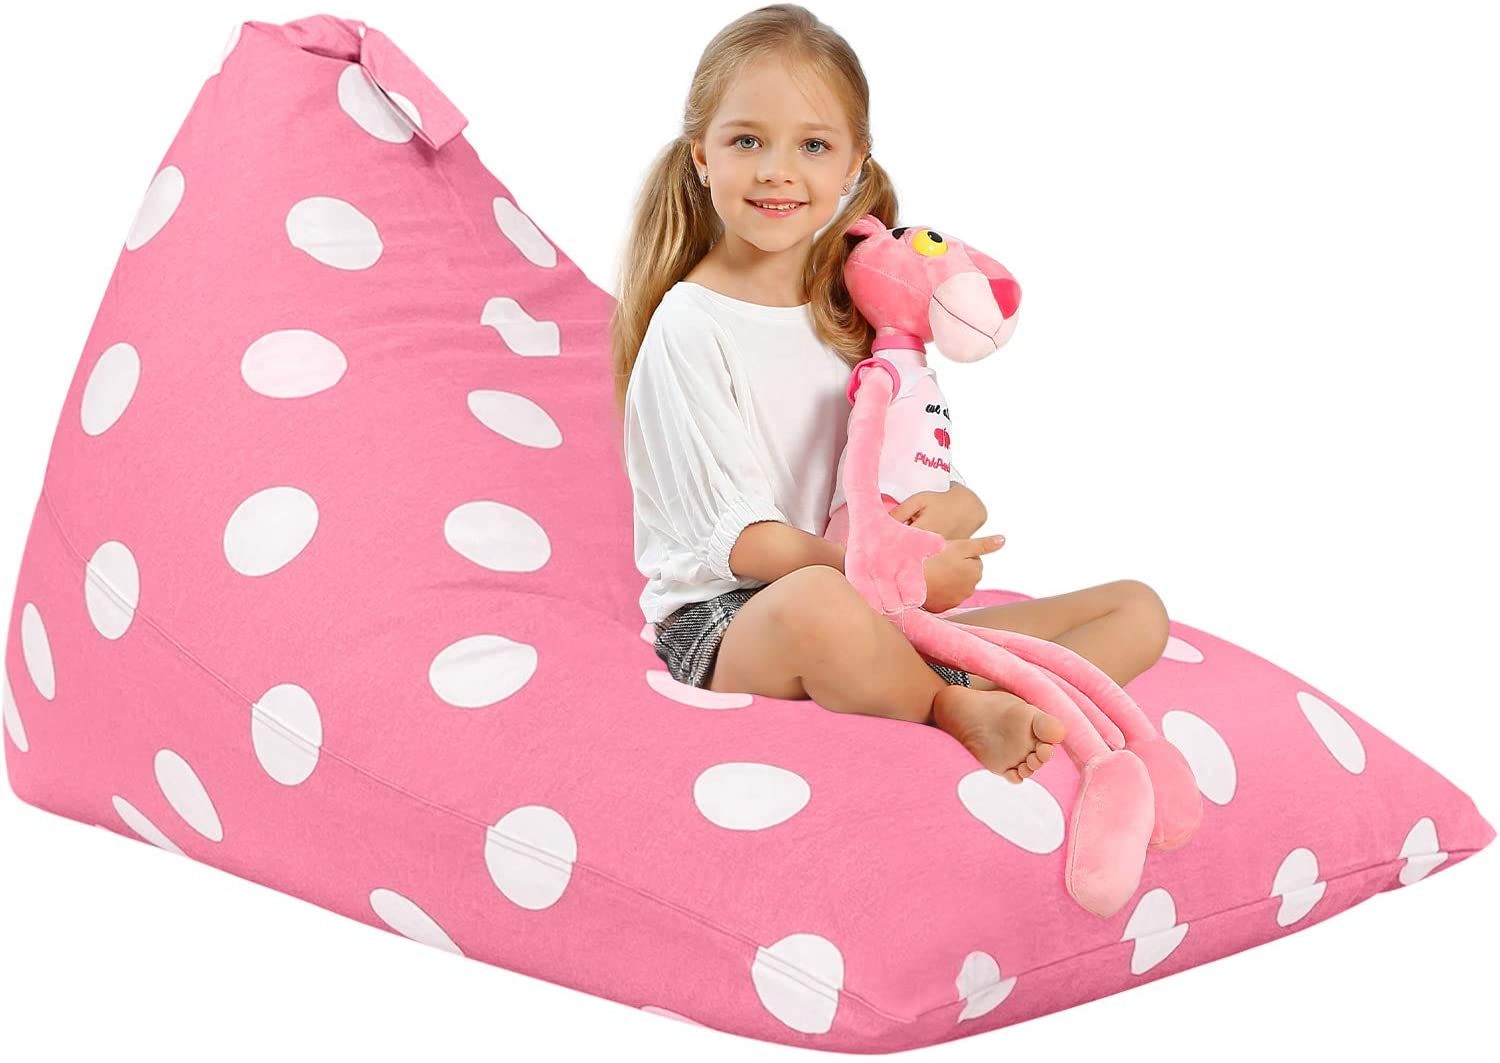 Aubliss Stuffed Animal Storage Bean Bag Chair Cover for Kids, Girls and Adults, Beanbag Cover Only, 23 Inch Long YKK Zipper, Premium Cotton Canvas, Xmas Gift Ideas(Light Pink dot)